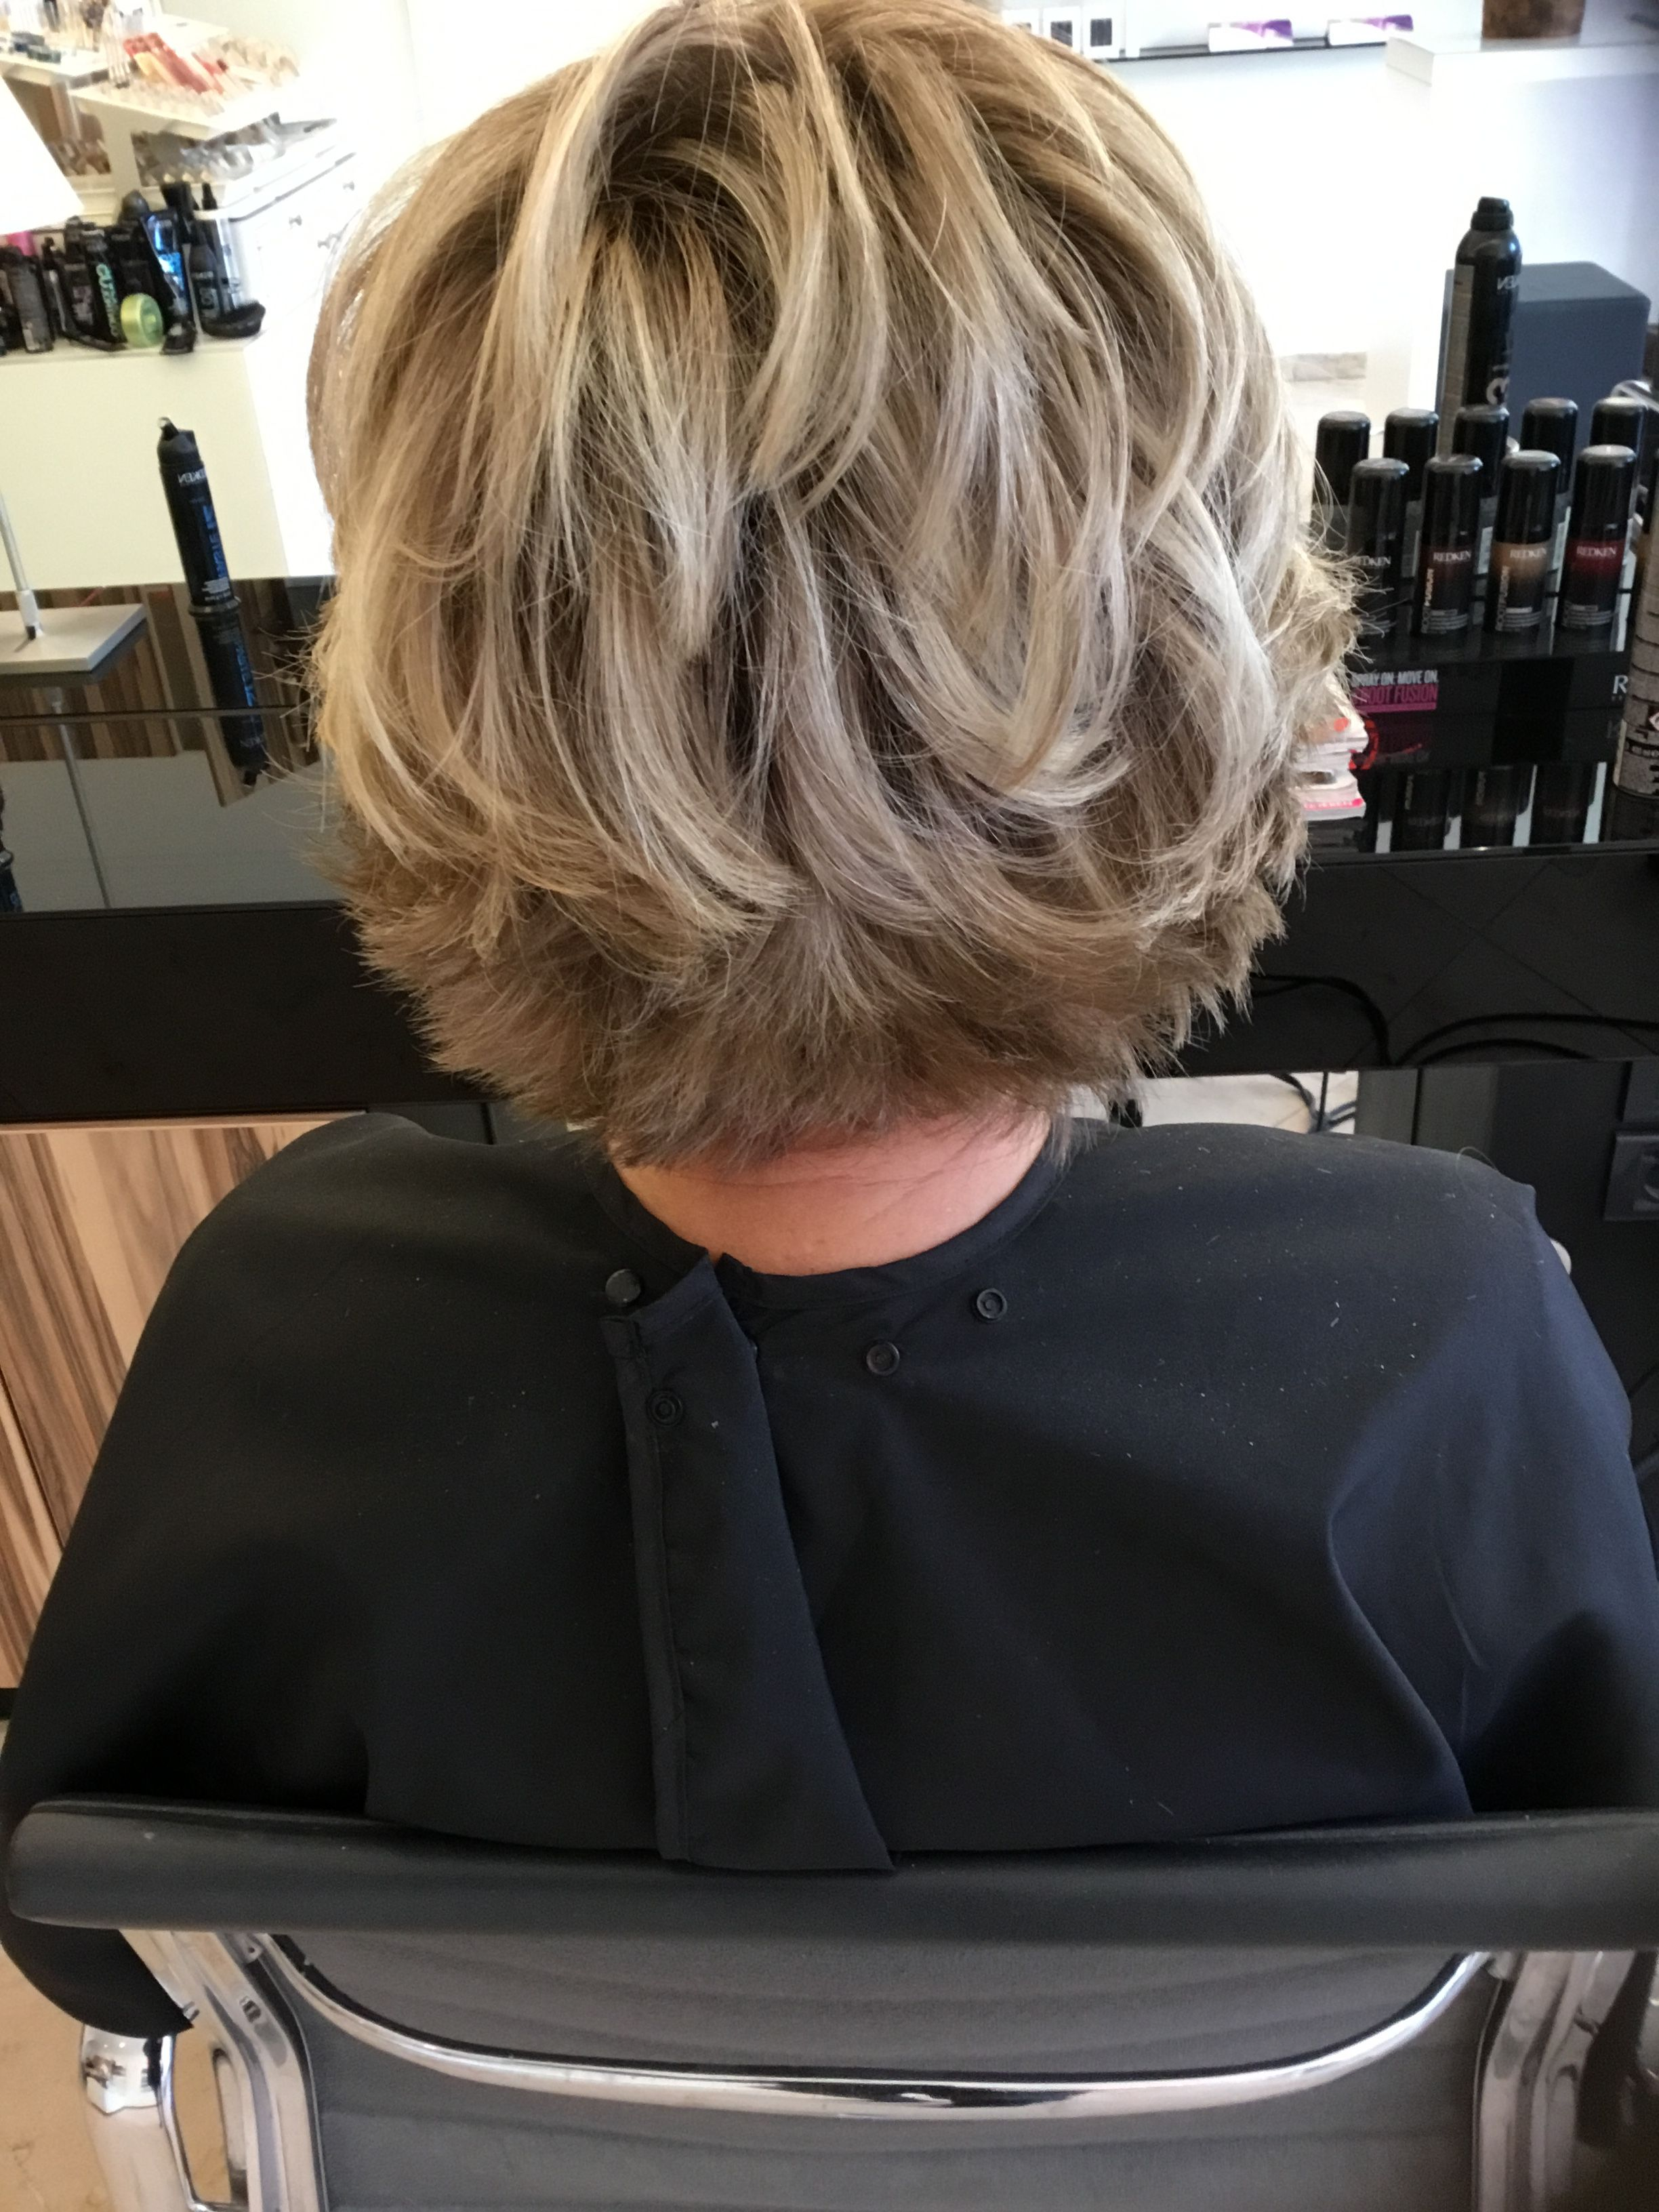 Style De Coiffure Femme Cheveux Mi-long Highlights Blondehair Salontournier Hair Etc